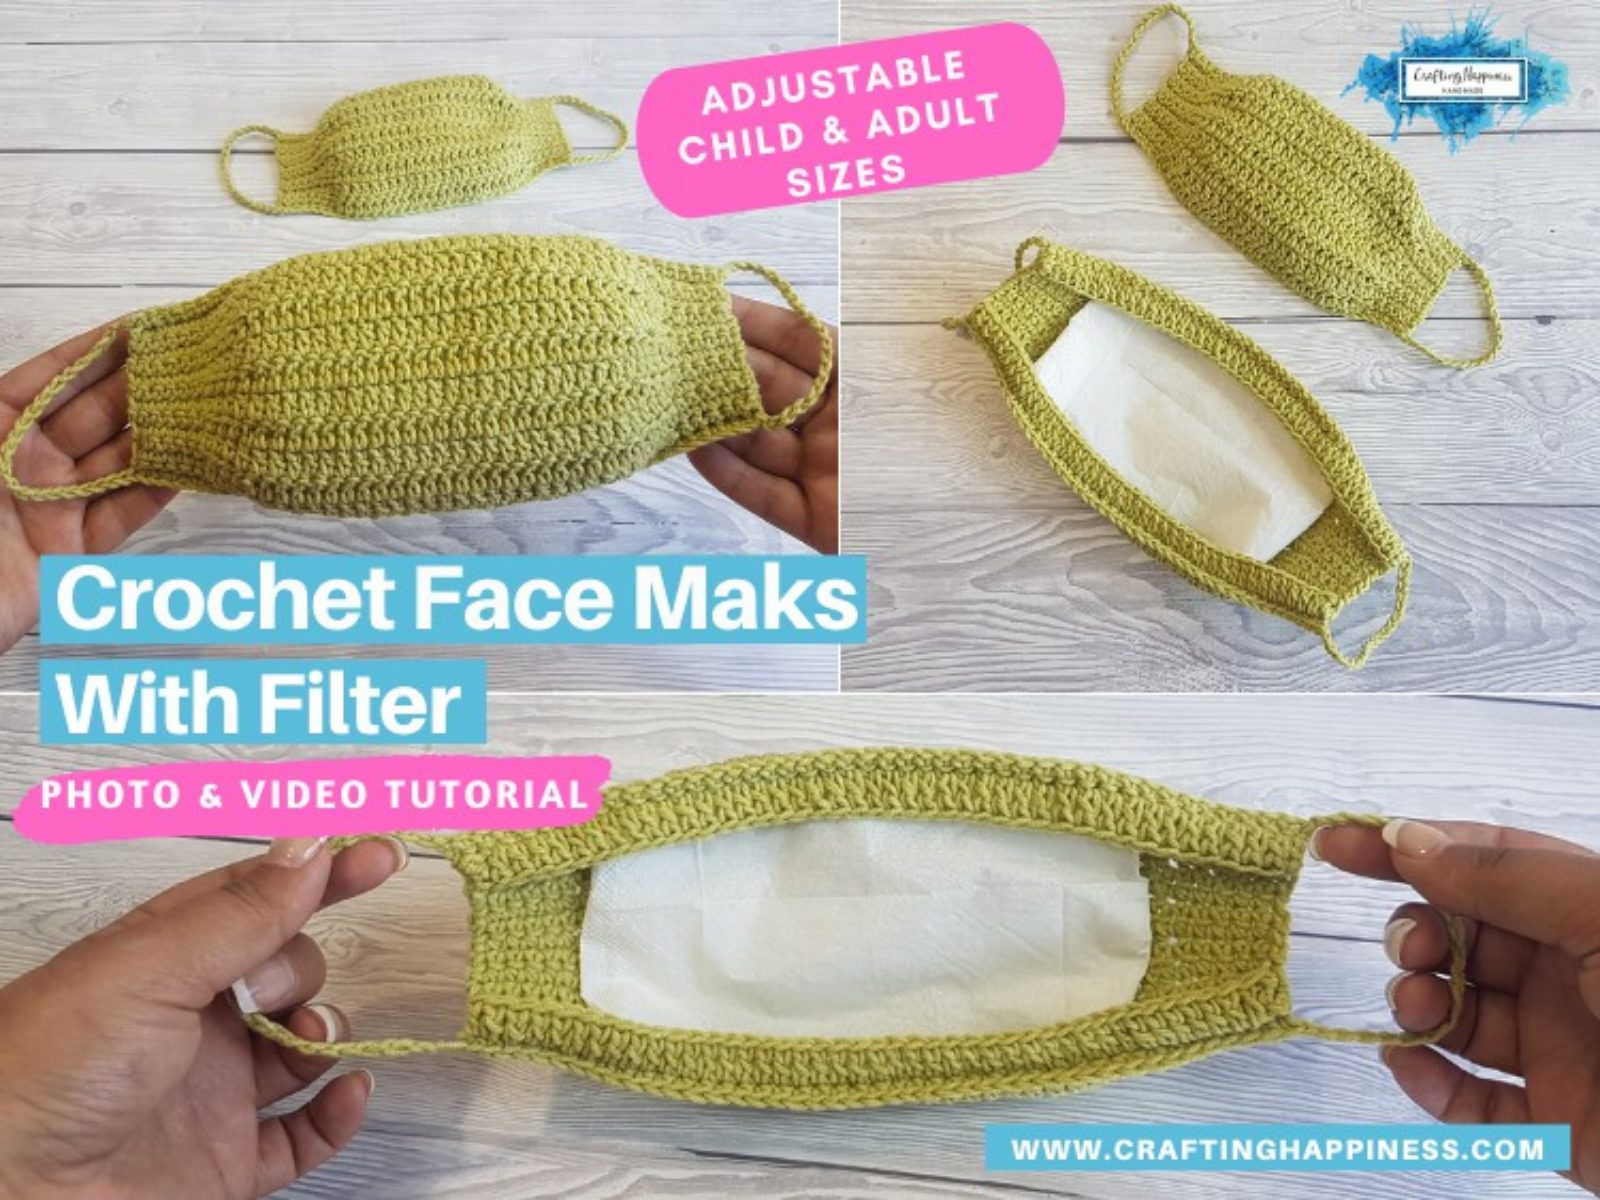 Crochet Face Mask With Filter (Child & Adult) FACEBOOK POSTER